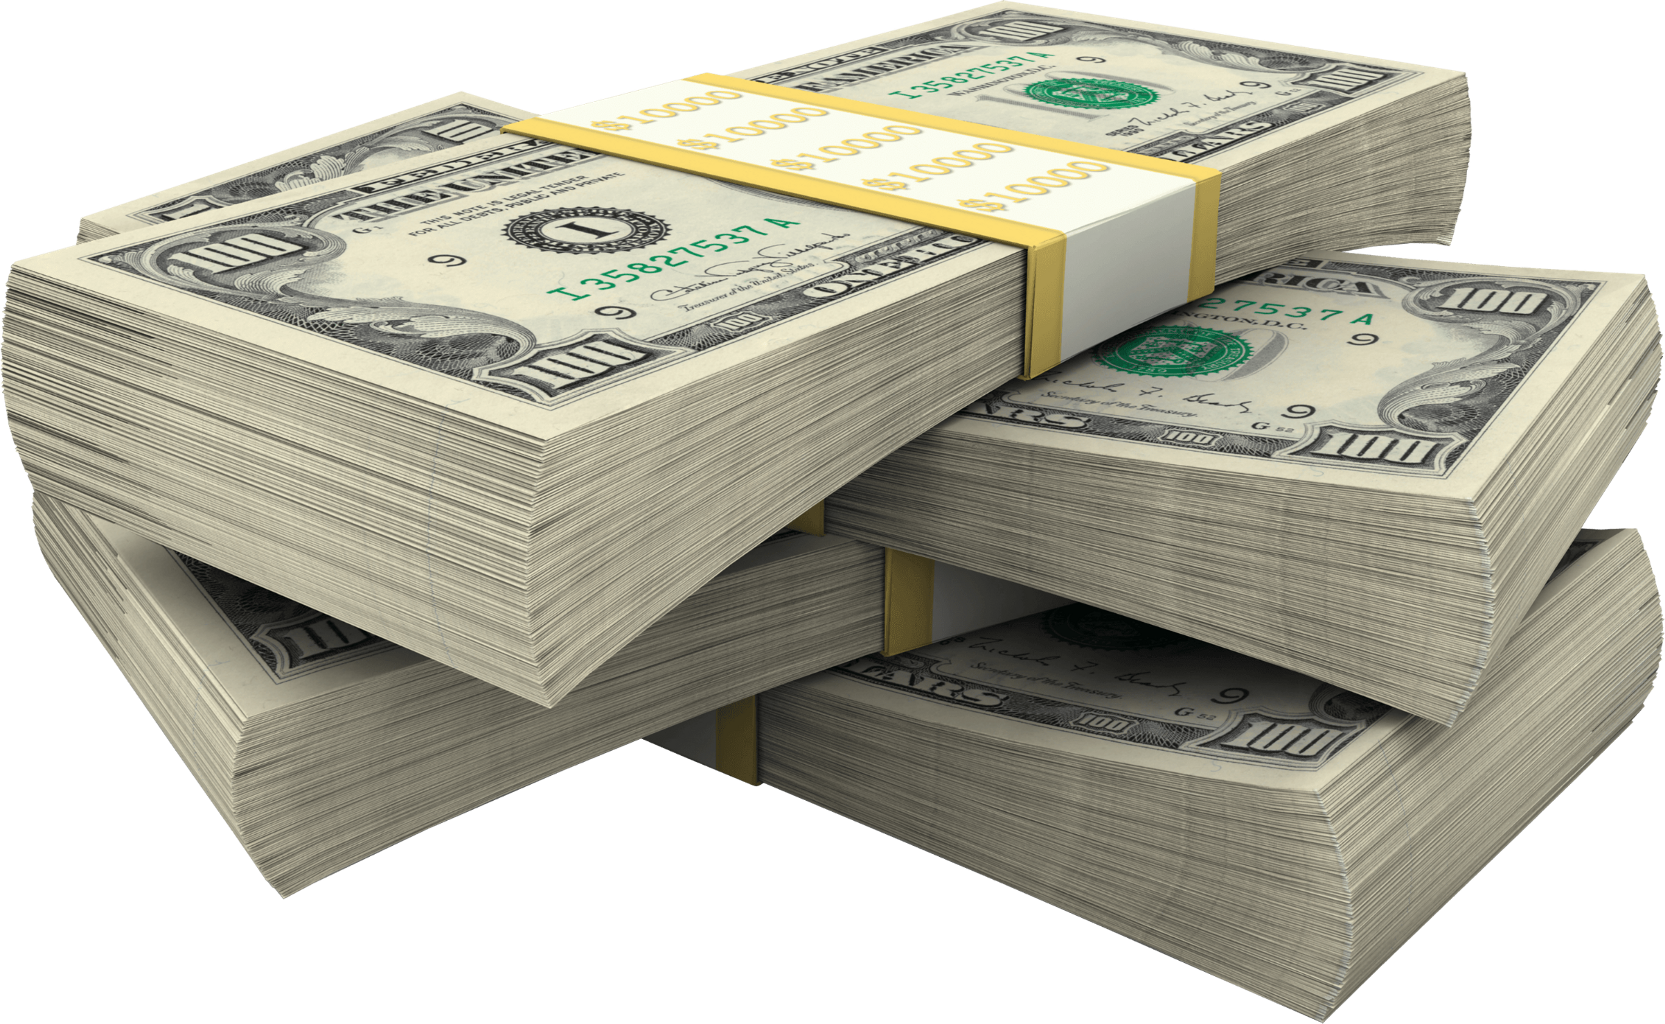 Money maker clipart jpg freeuse library dollars money dollar $ moneymaker moneyinthebank moneym... jpg freeuse library